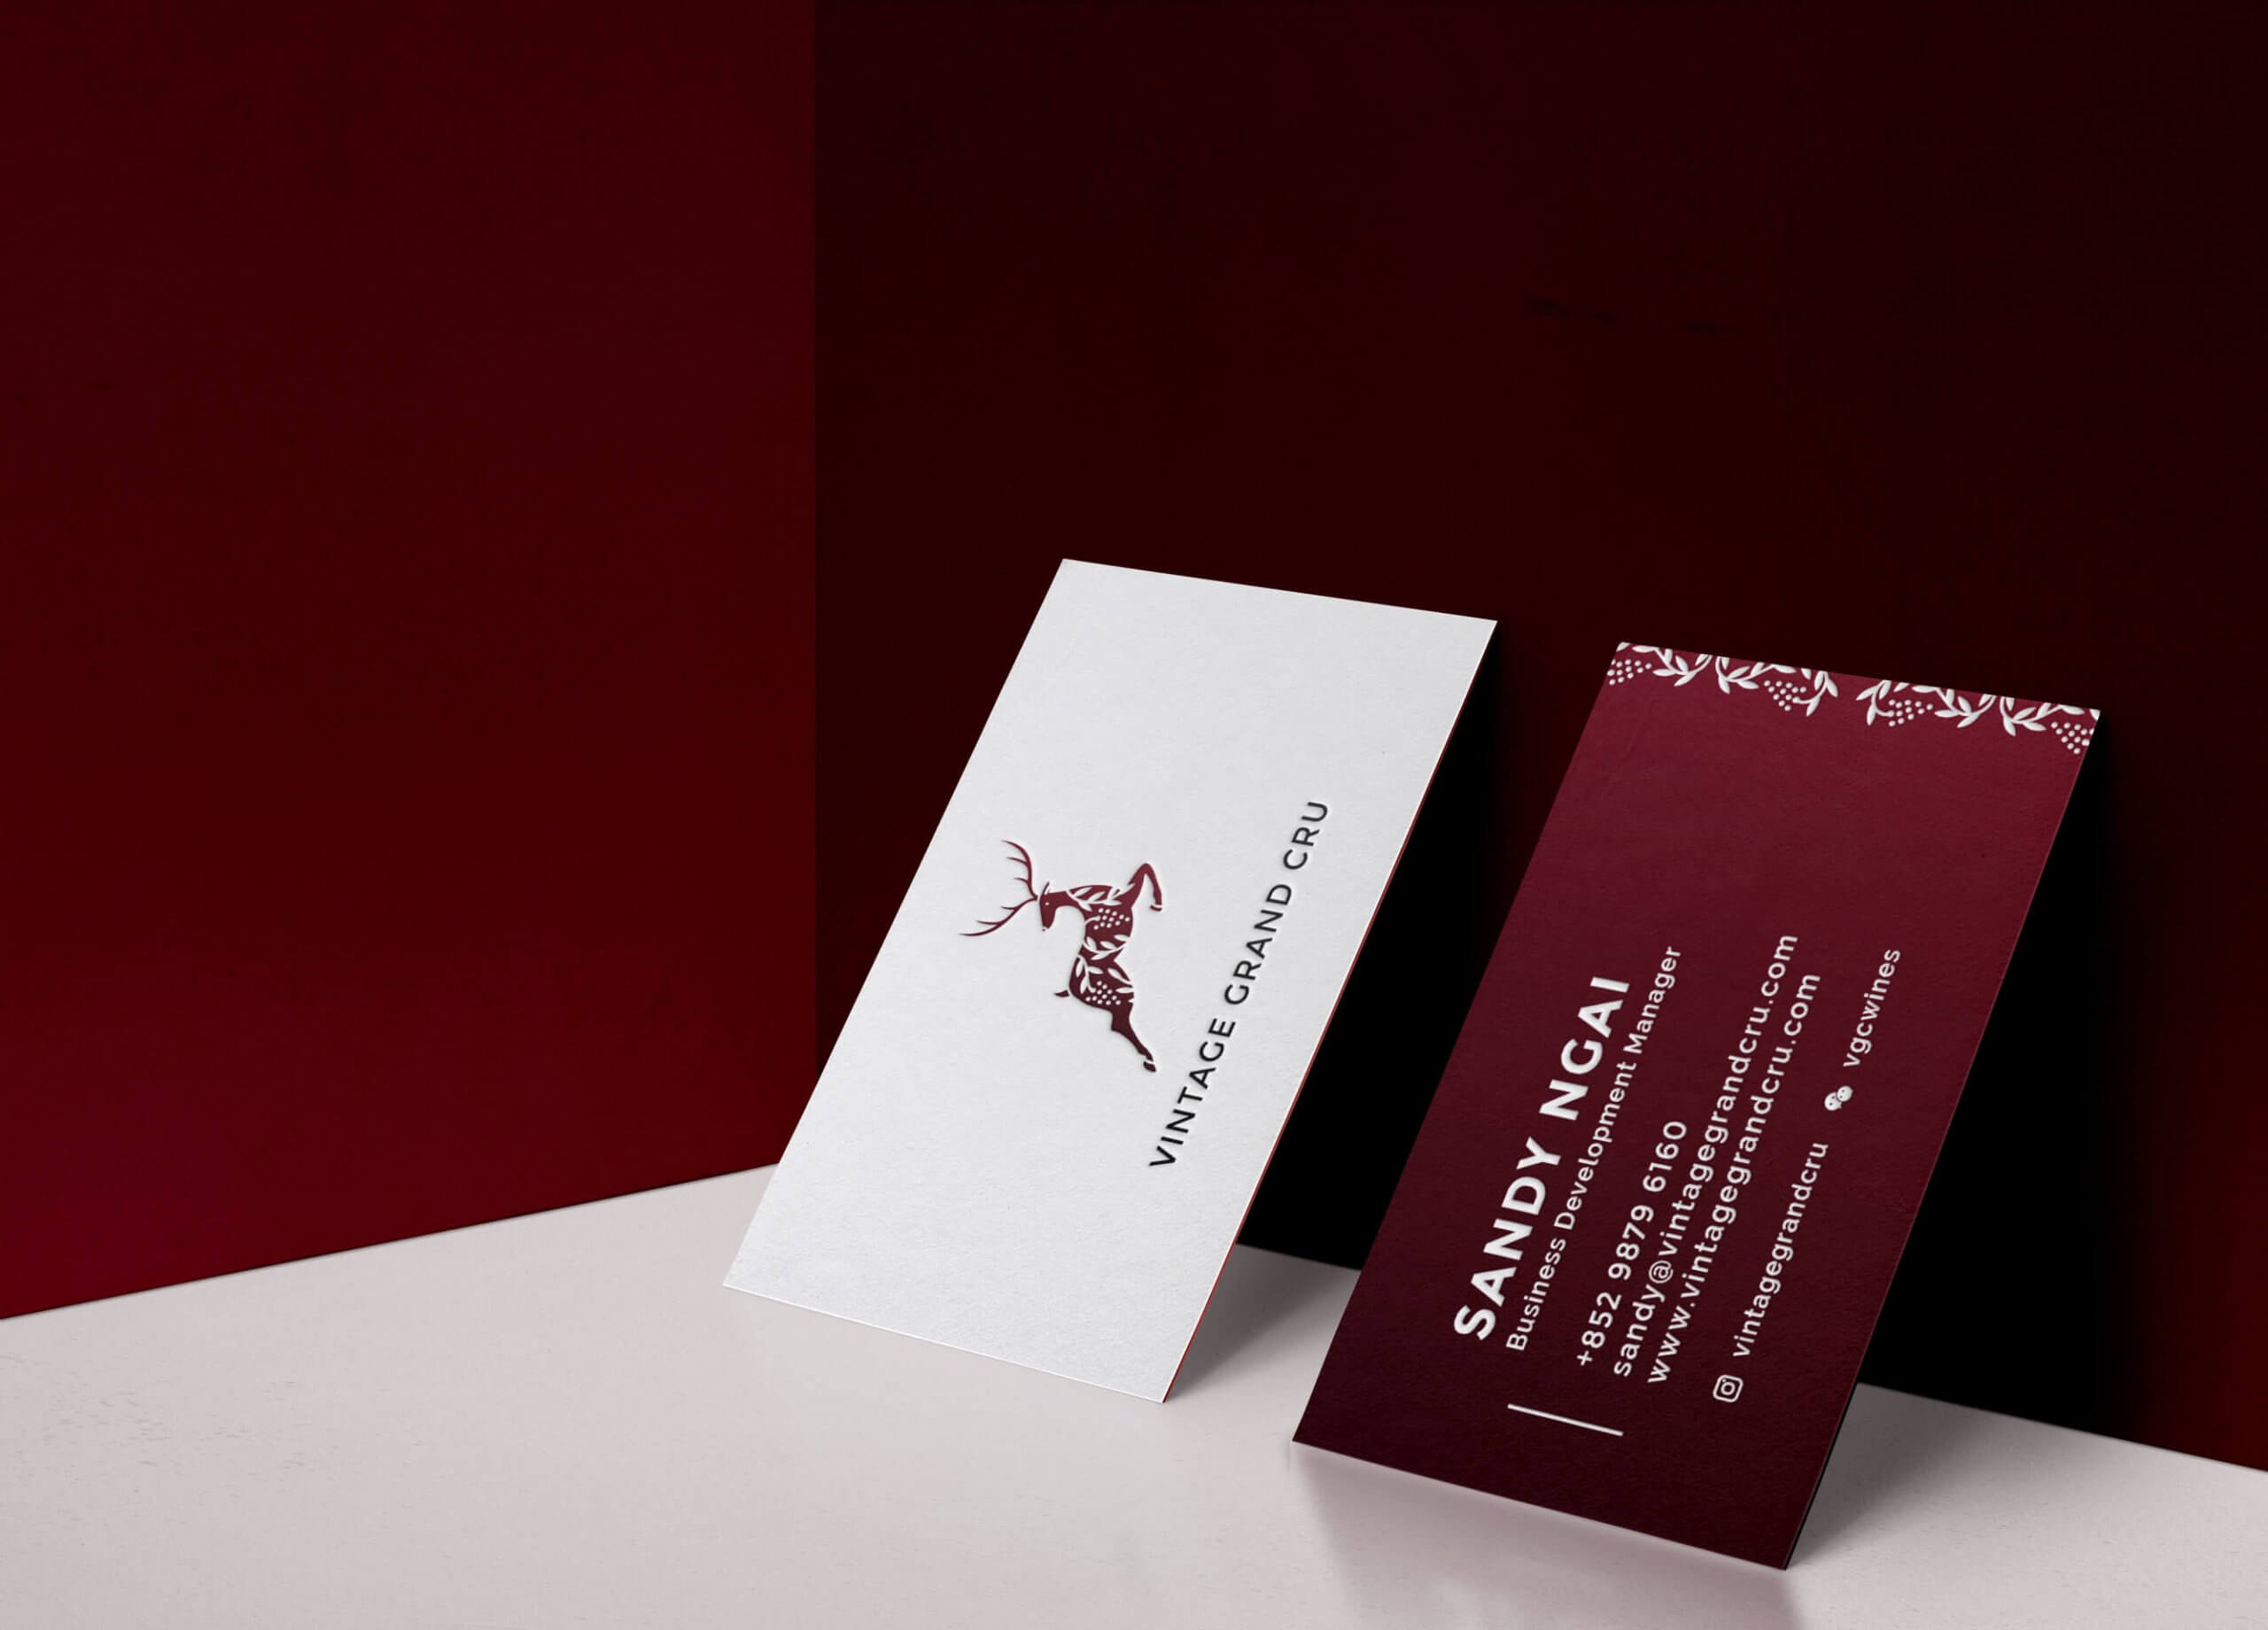 aurora creative studio graphic design illustration cape town portfolio wine branding